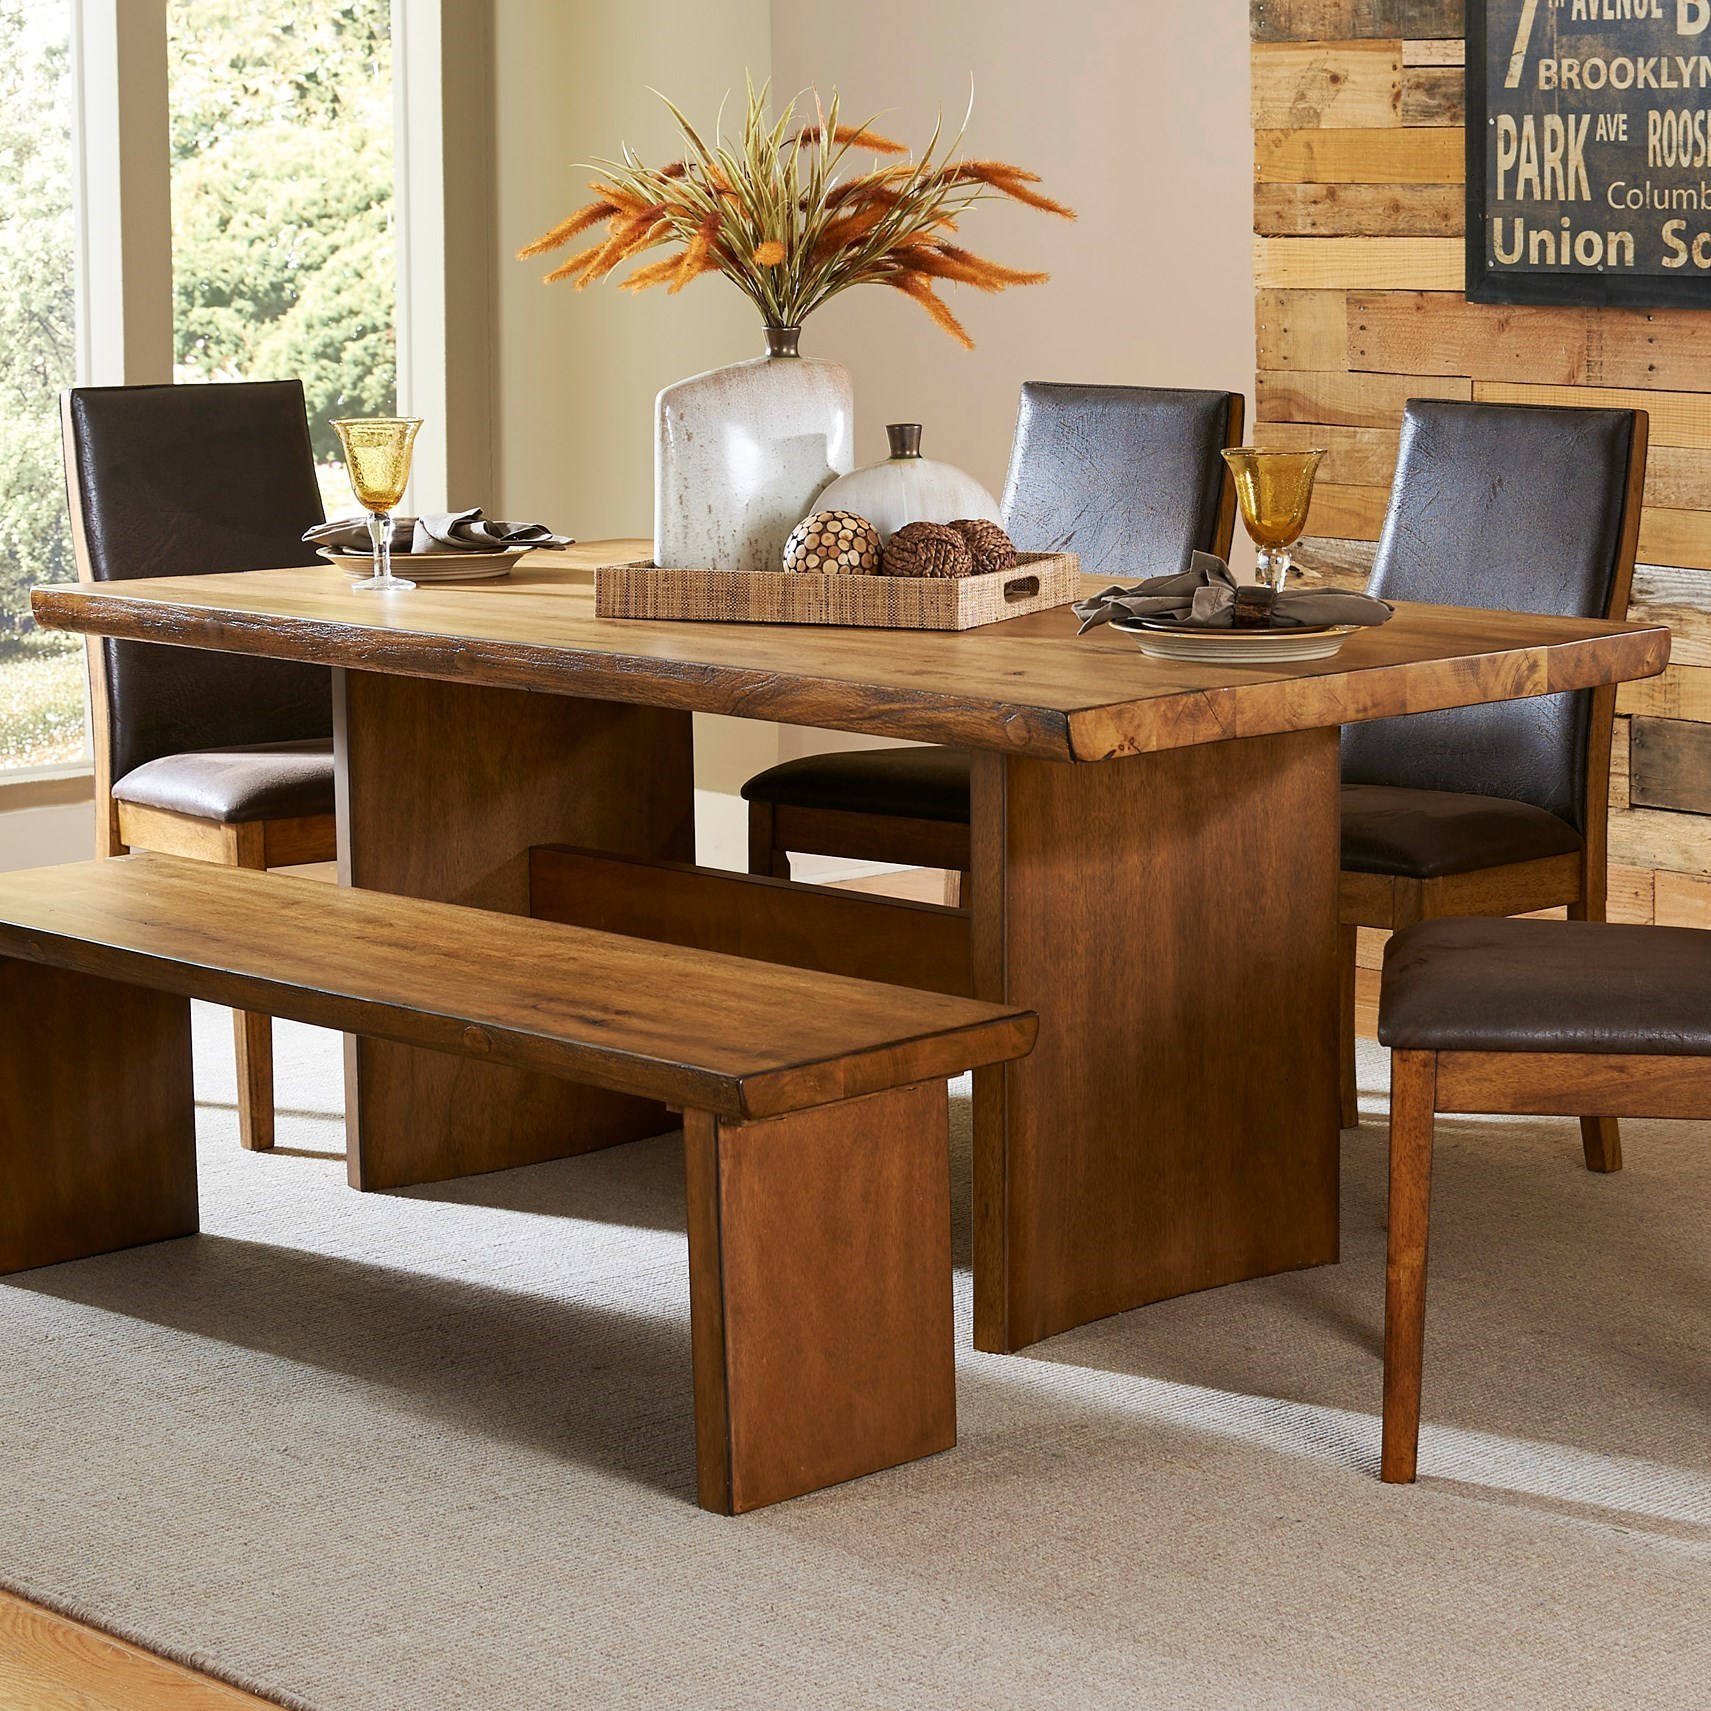 Homelegance 5479 Dining Table - Item Number: 5479-72